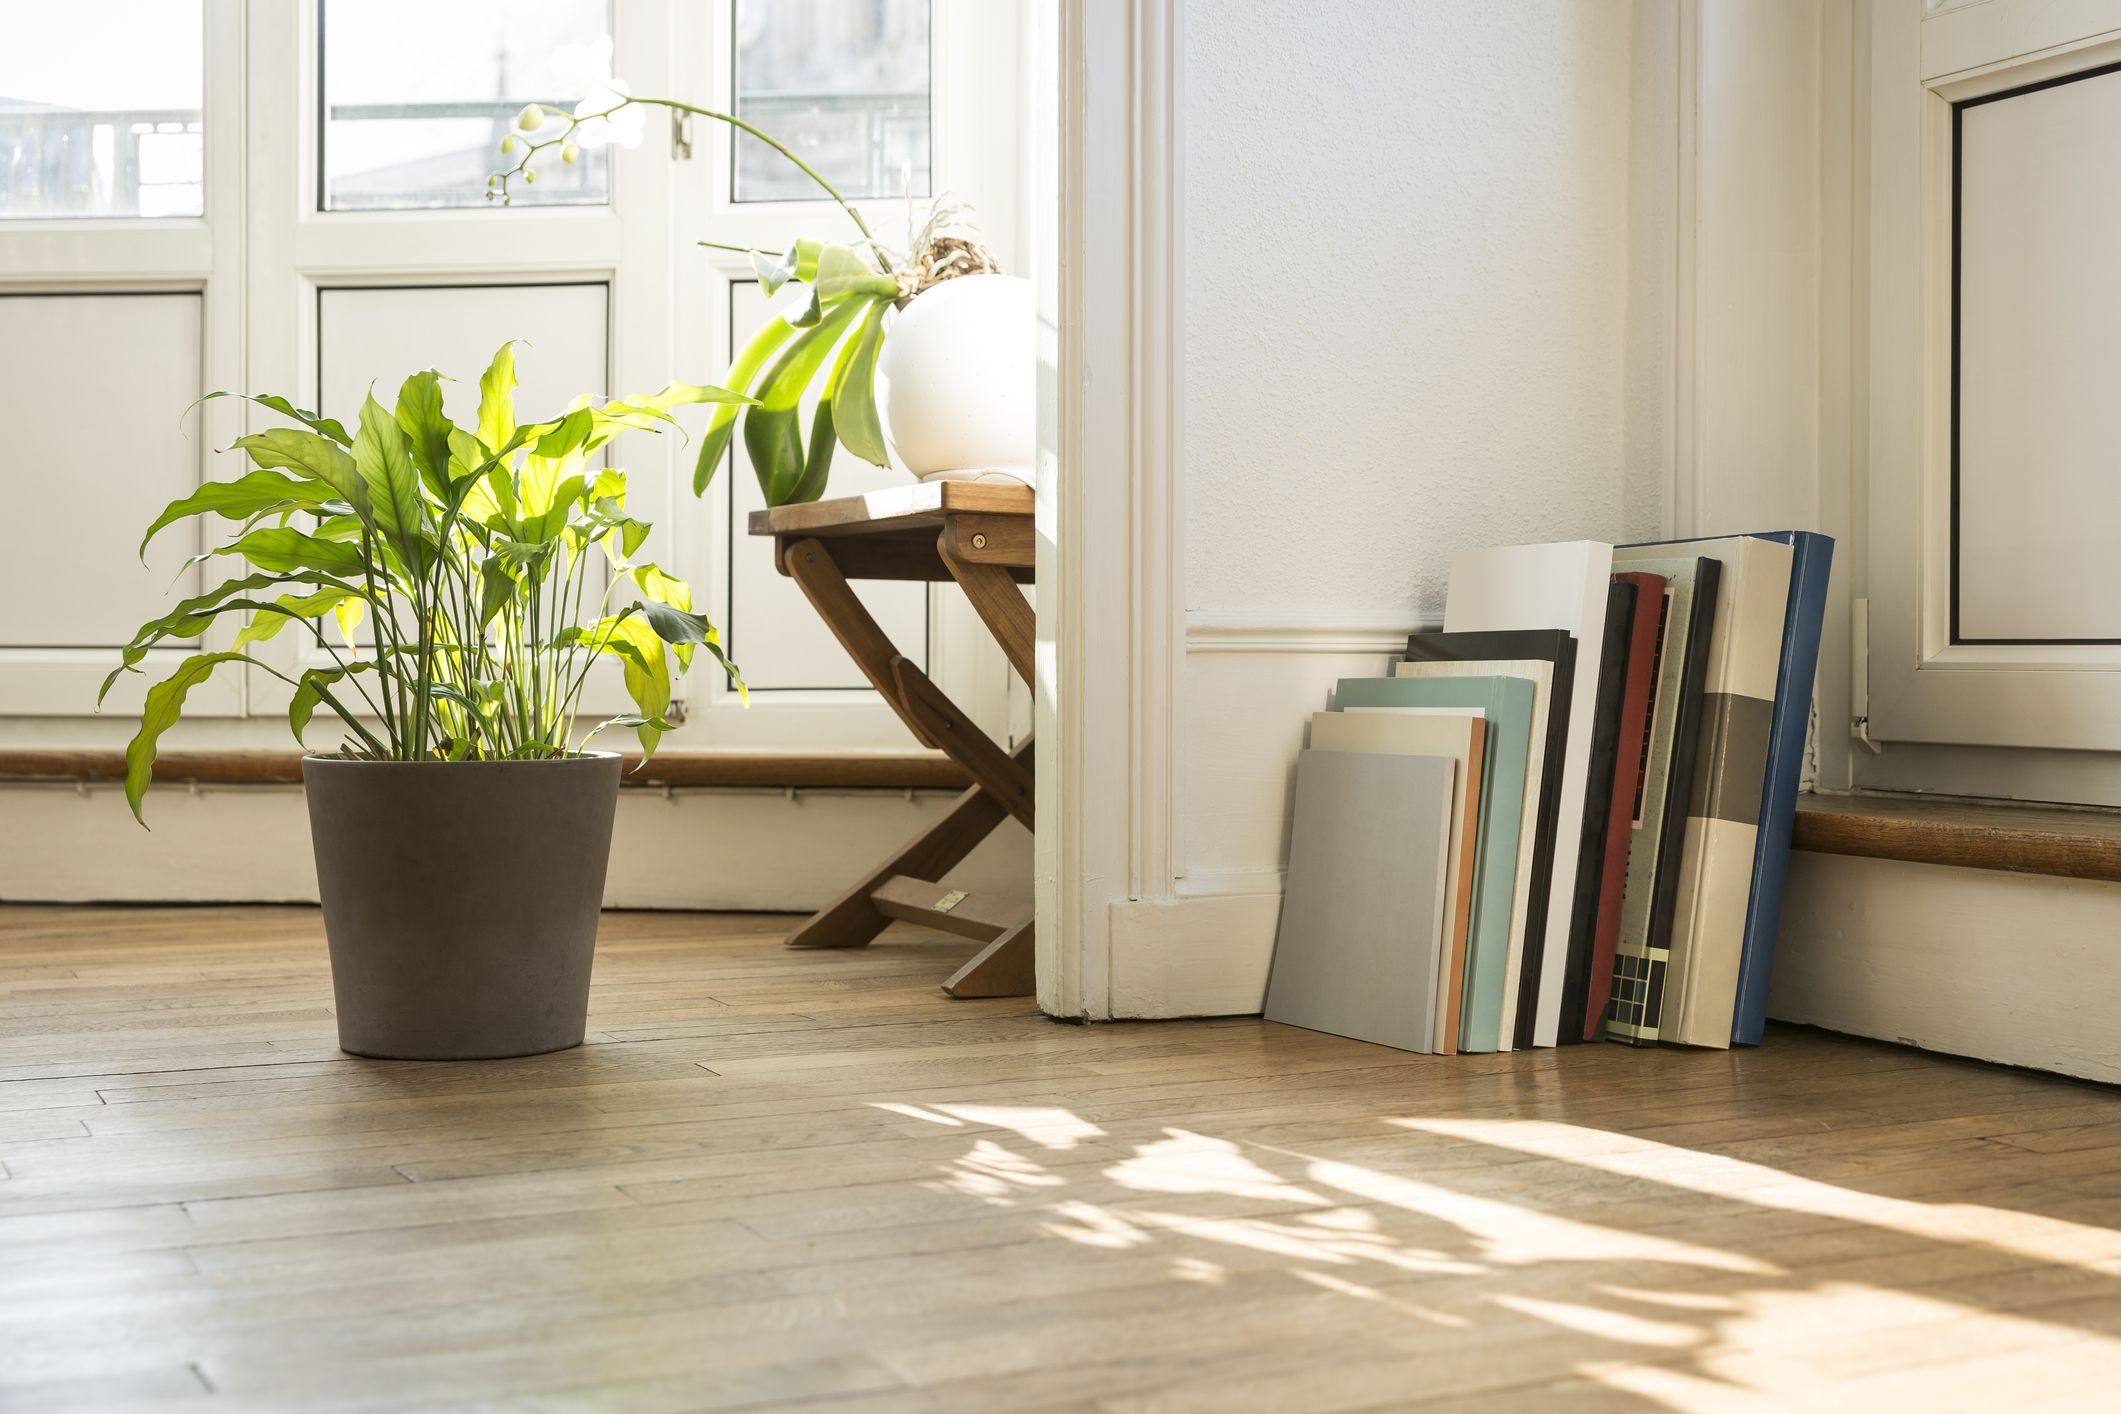 34 Houseplants That Can Survive Low Light Best Indoor Low Light Plants